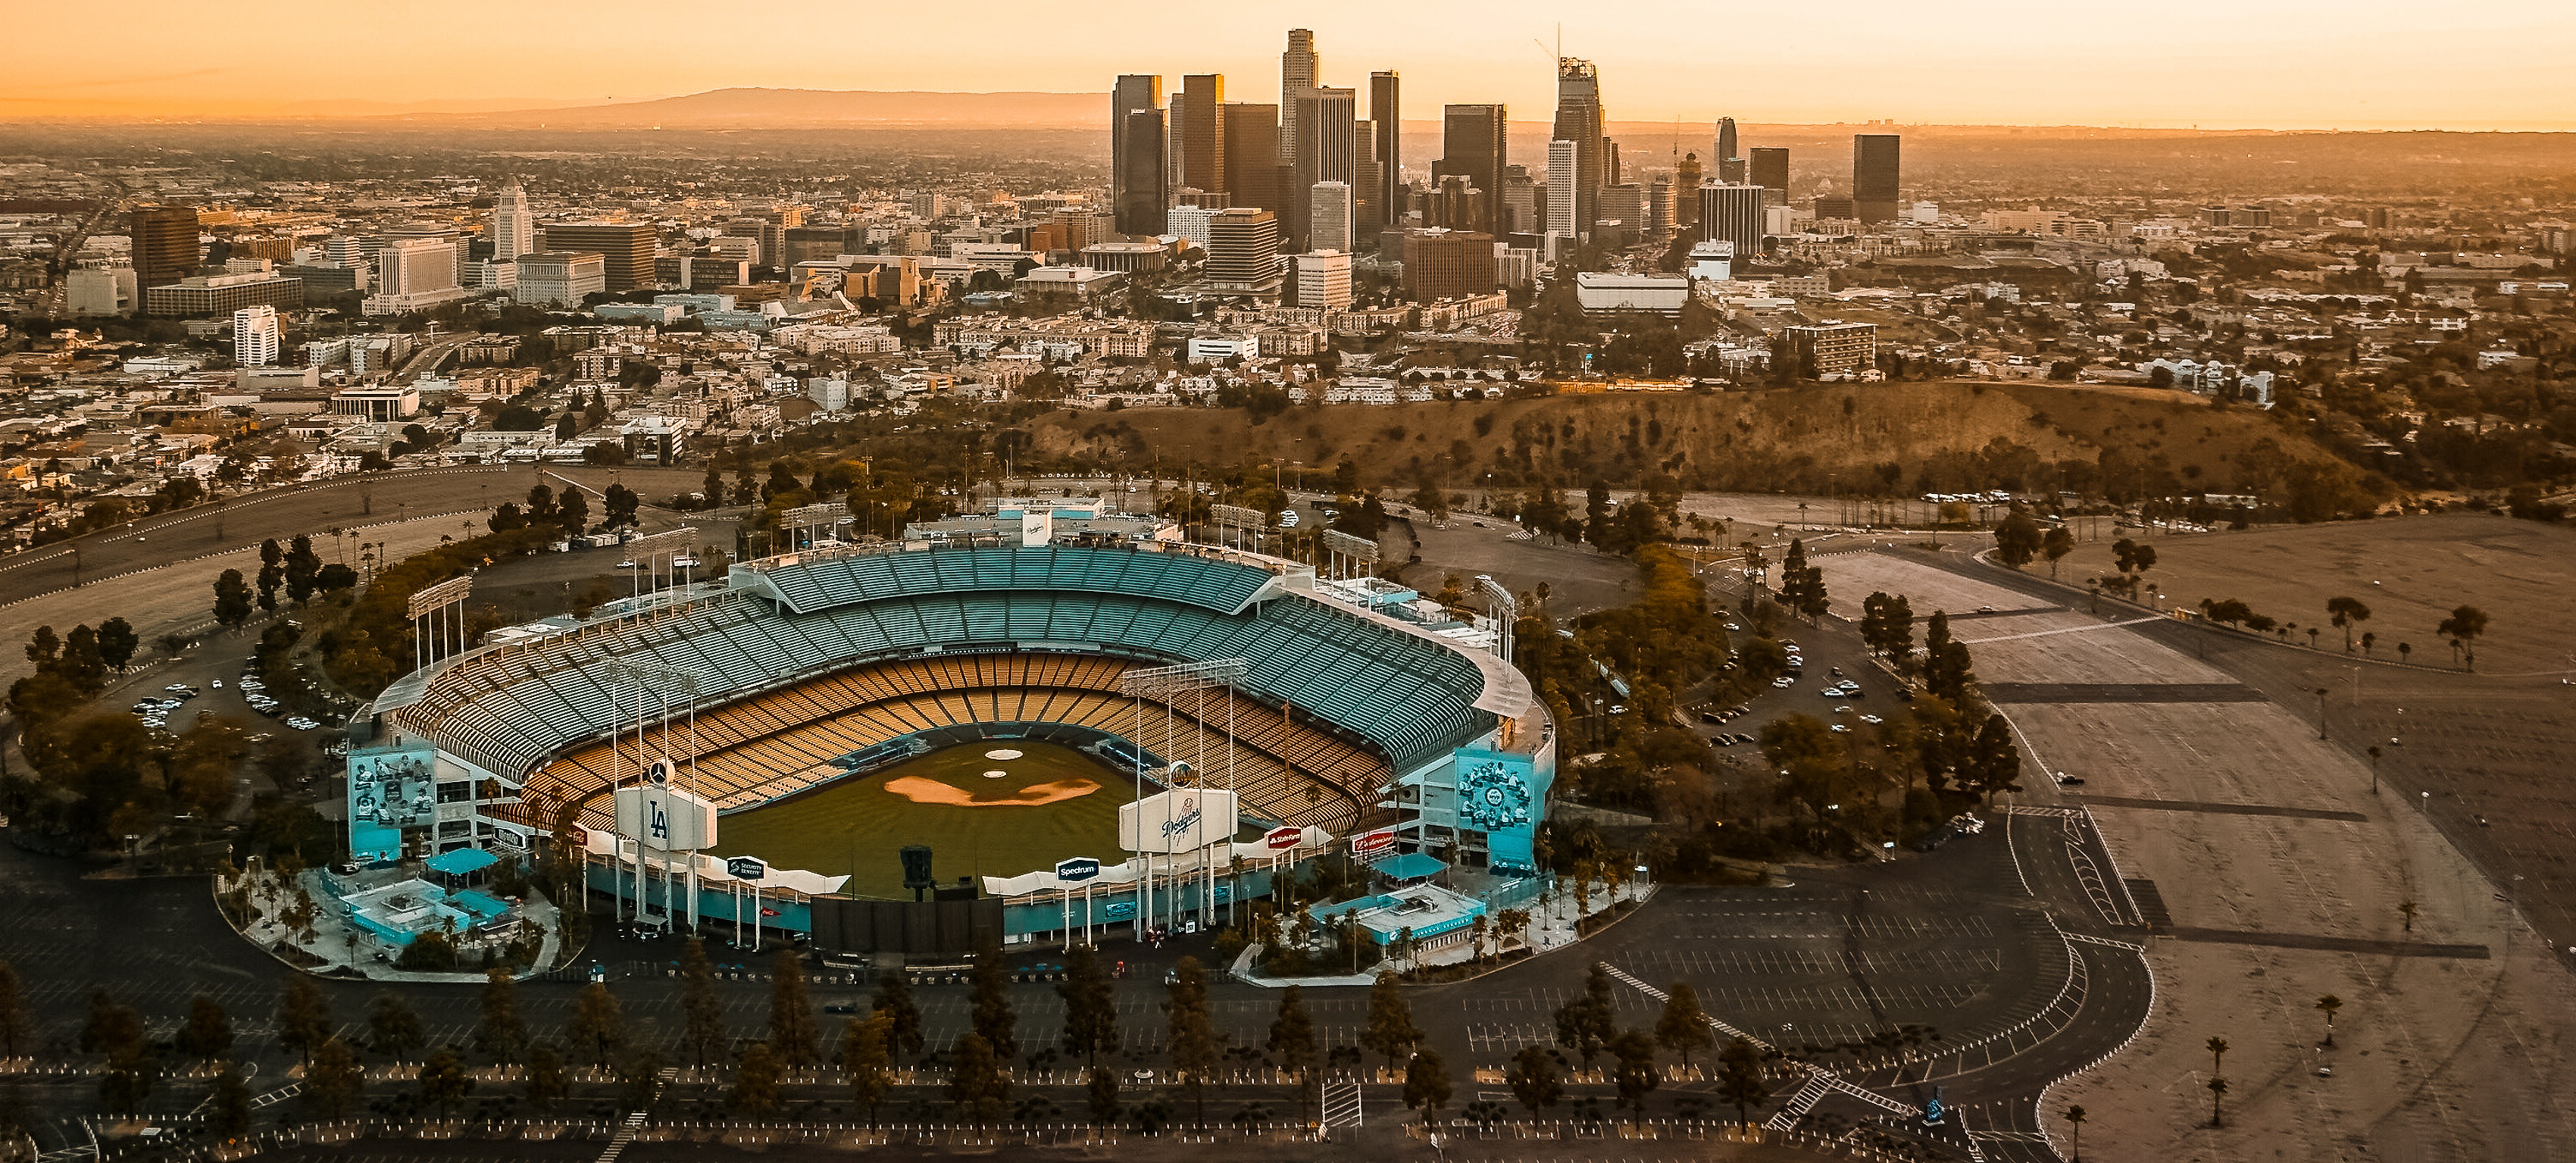 Domestic violence reports rose during World Series